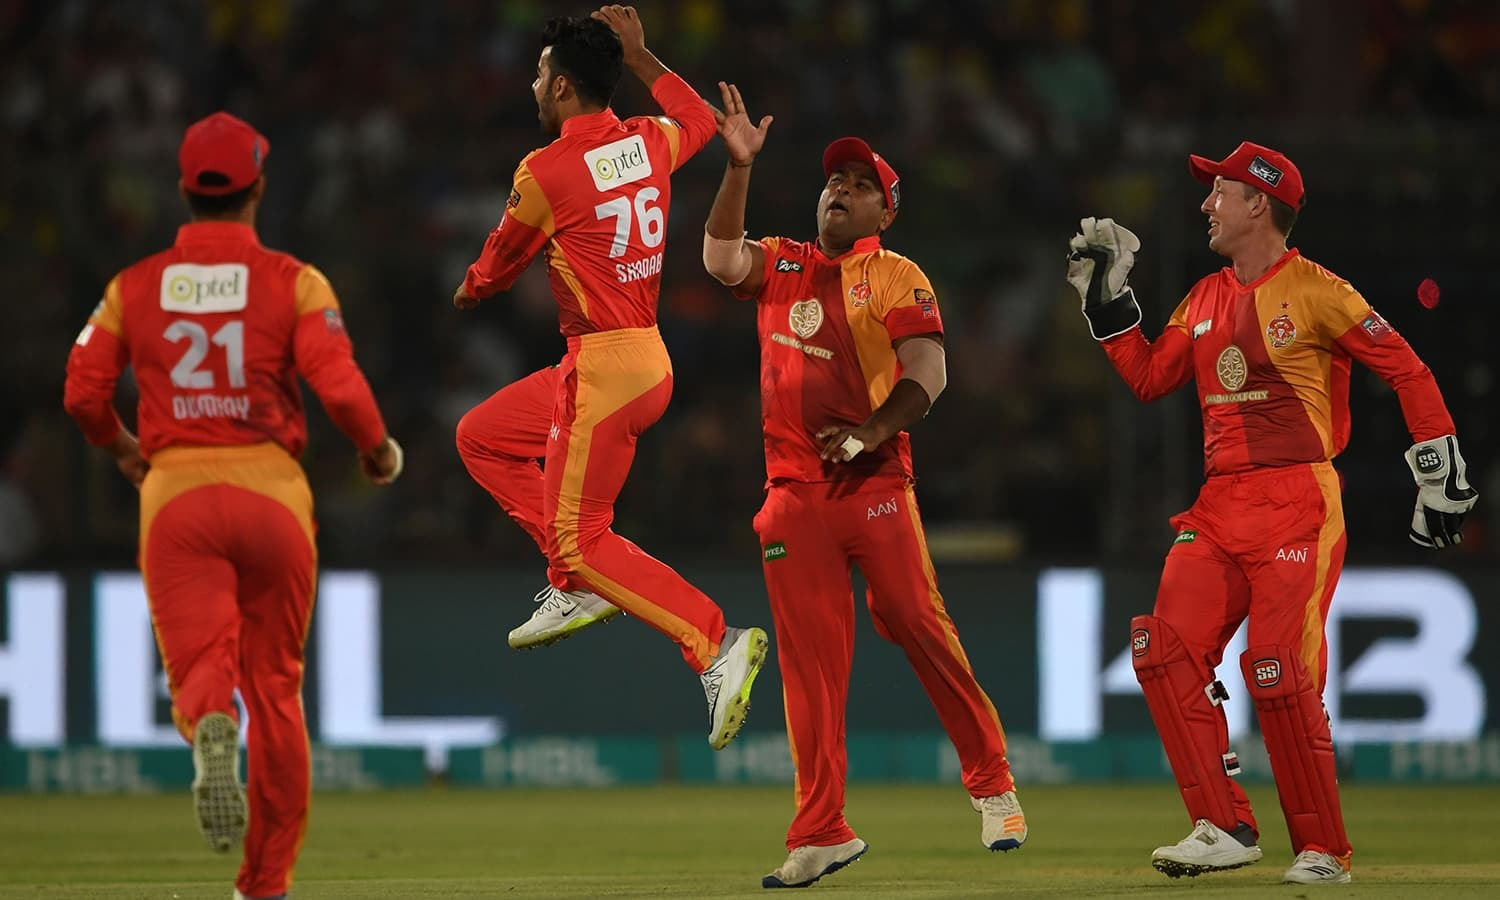 PSL 2018 review: How each team fared